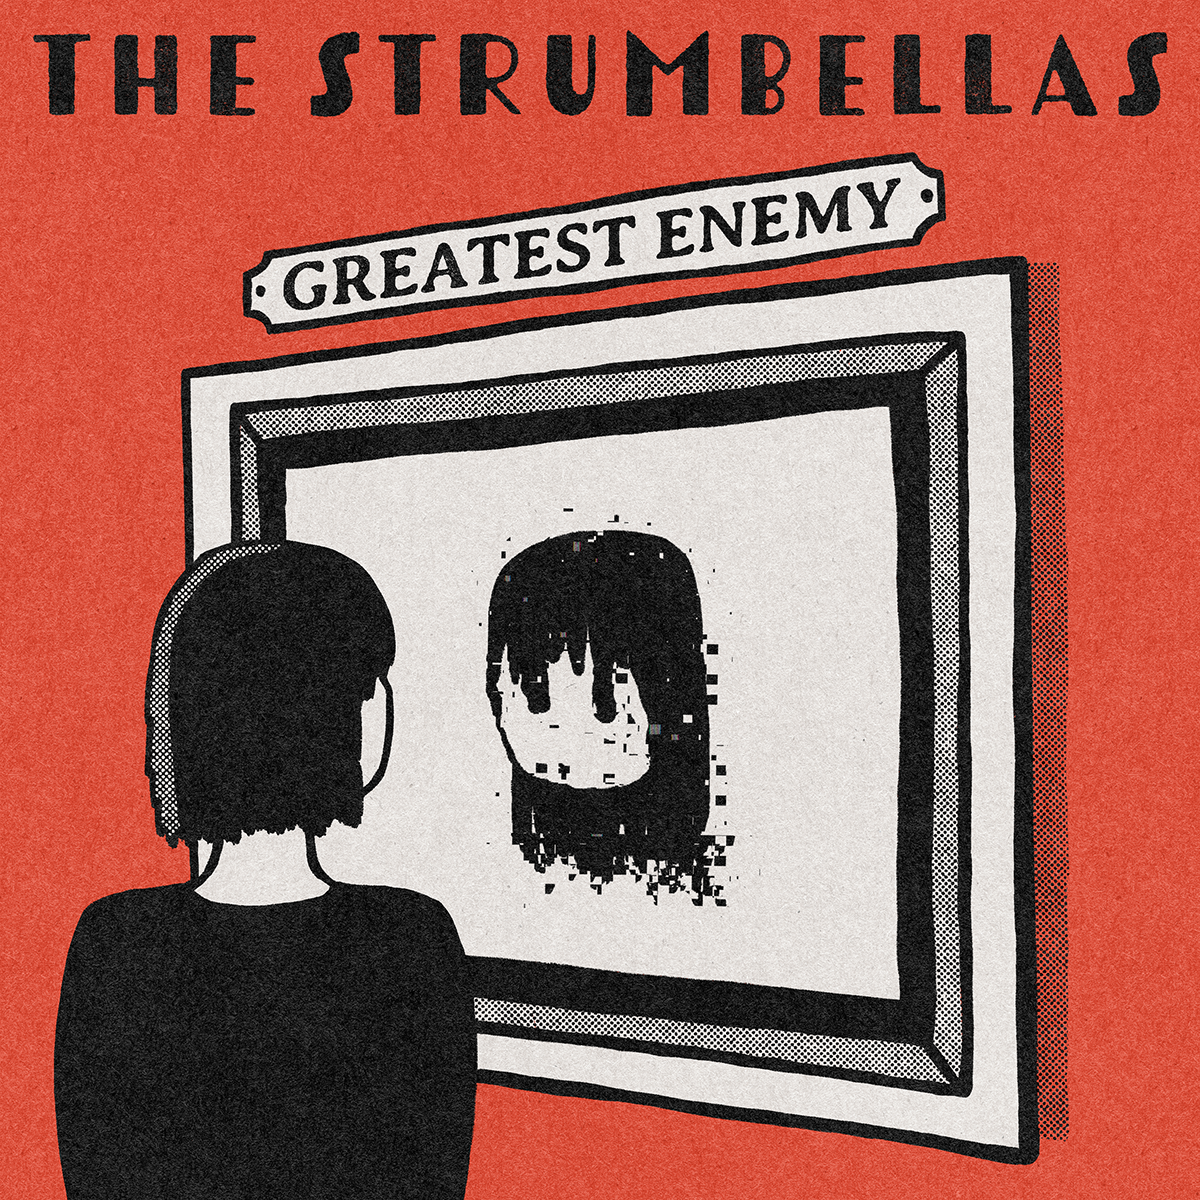 Canadian collective, The Strumbellas, return with their anthemic new track, Greatest Enemy, out now on Entertainment One.